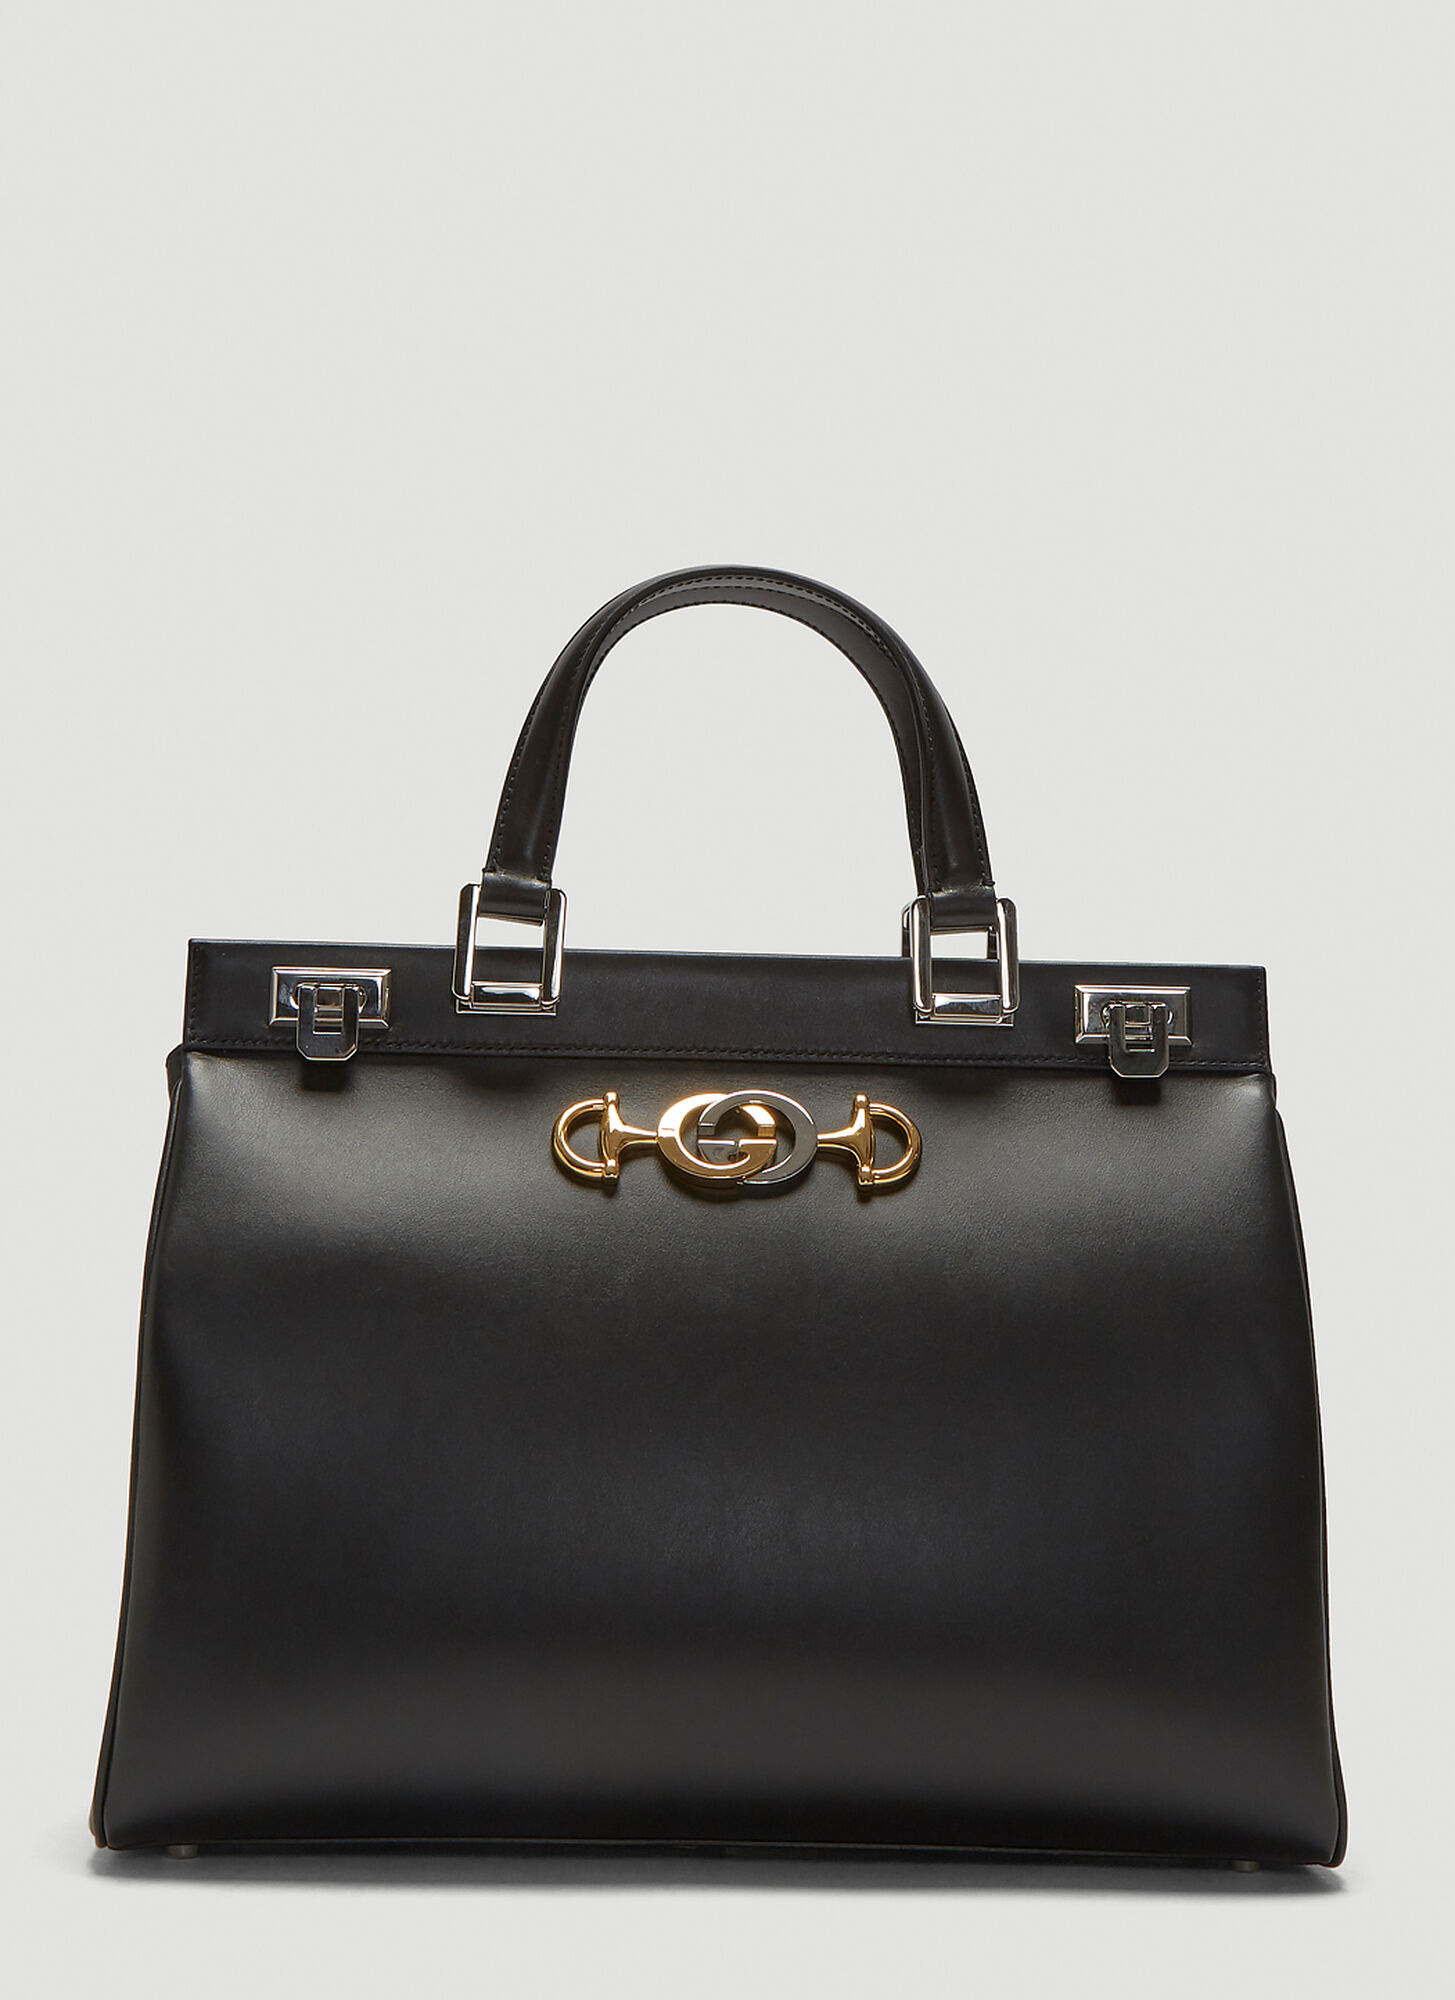 Gucci Zumi Top Handle Leather Bag in Black